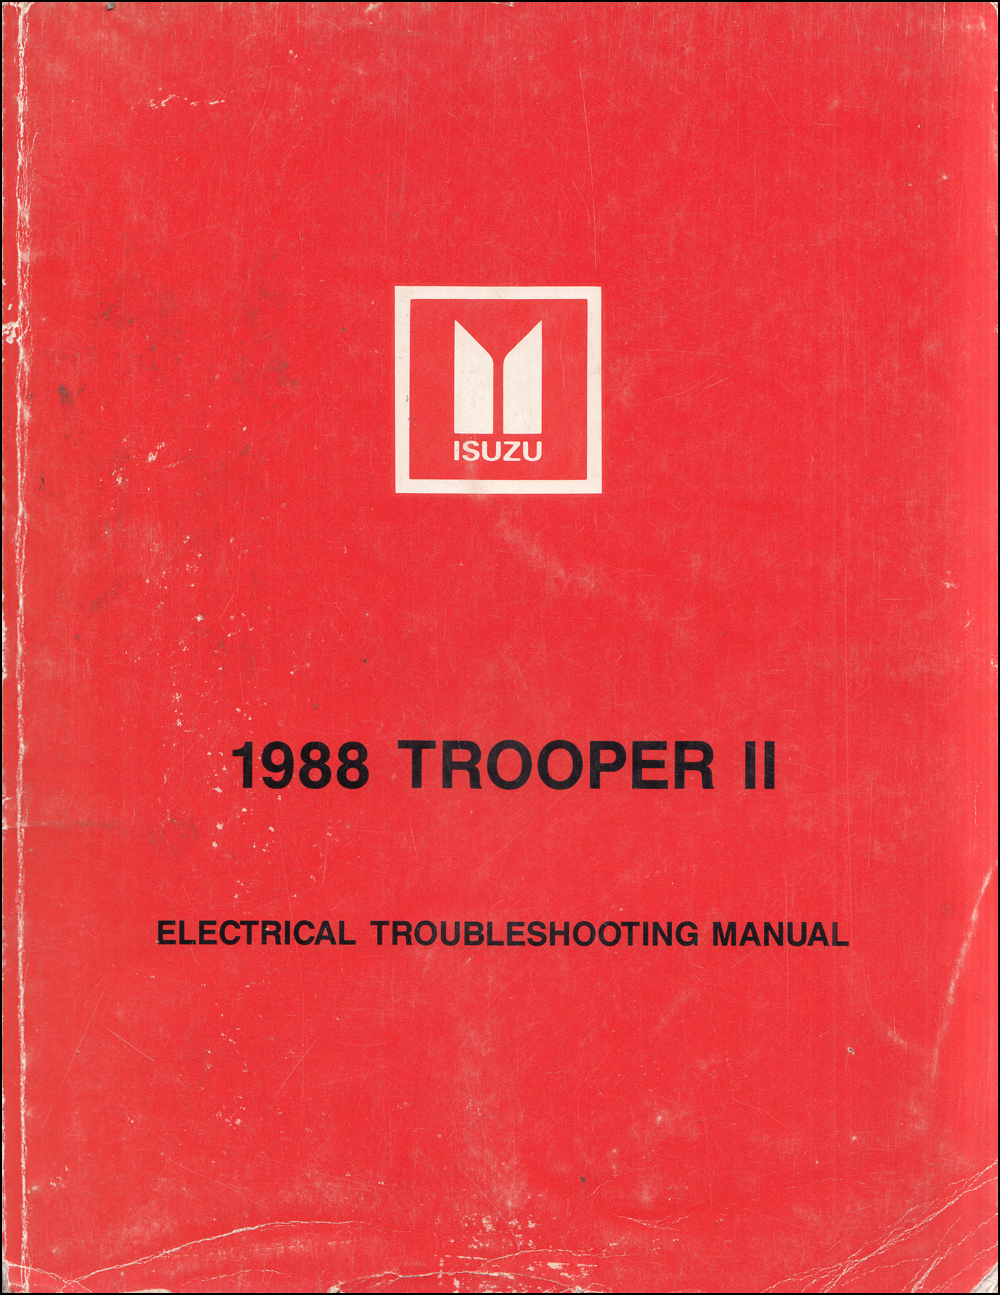 1988 Isuzu Trooper II Electrical Troubleshooting Manual Original